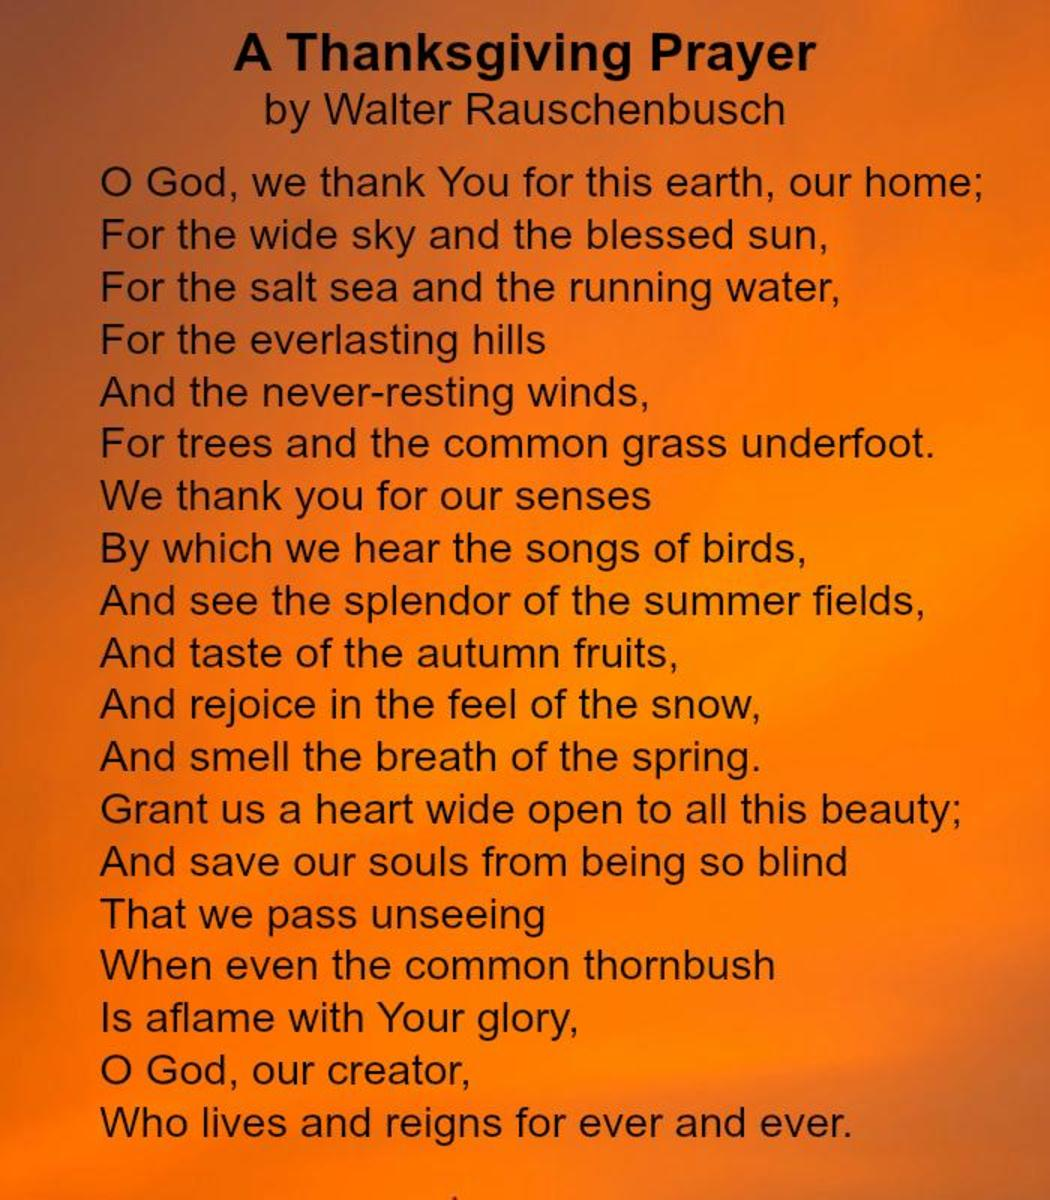 A Thanksgiving Prayer by Walter Rauschenbusch